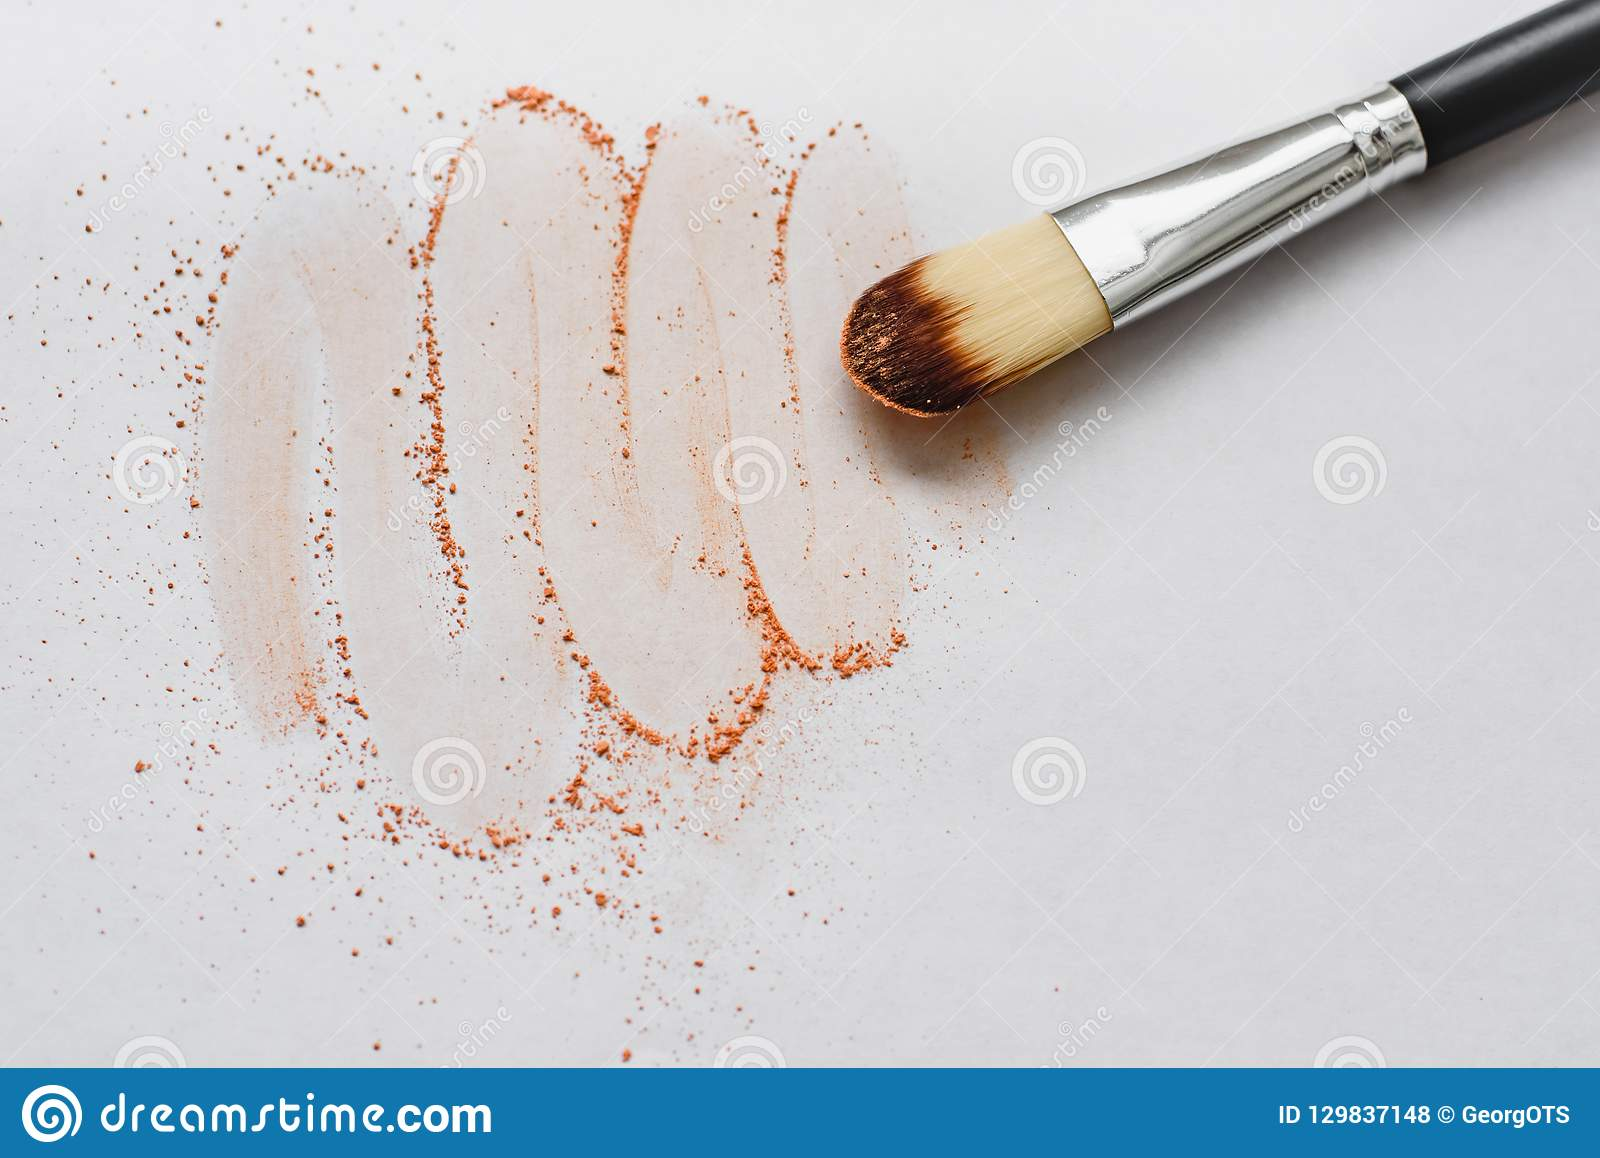 Makeup brush with beige powder isolated on white background. Makeup artist tool.